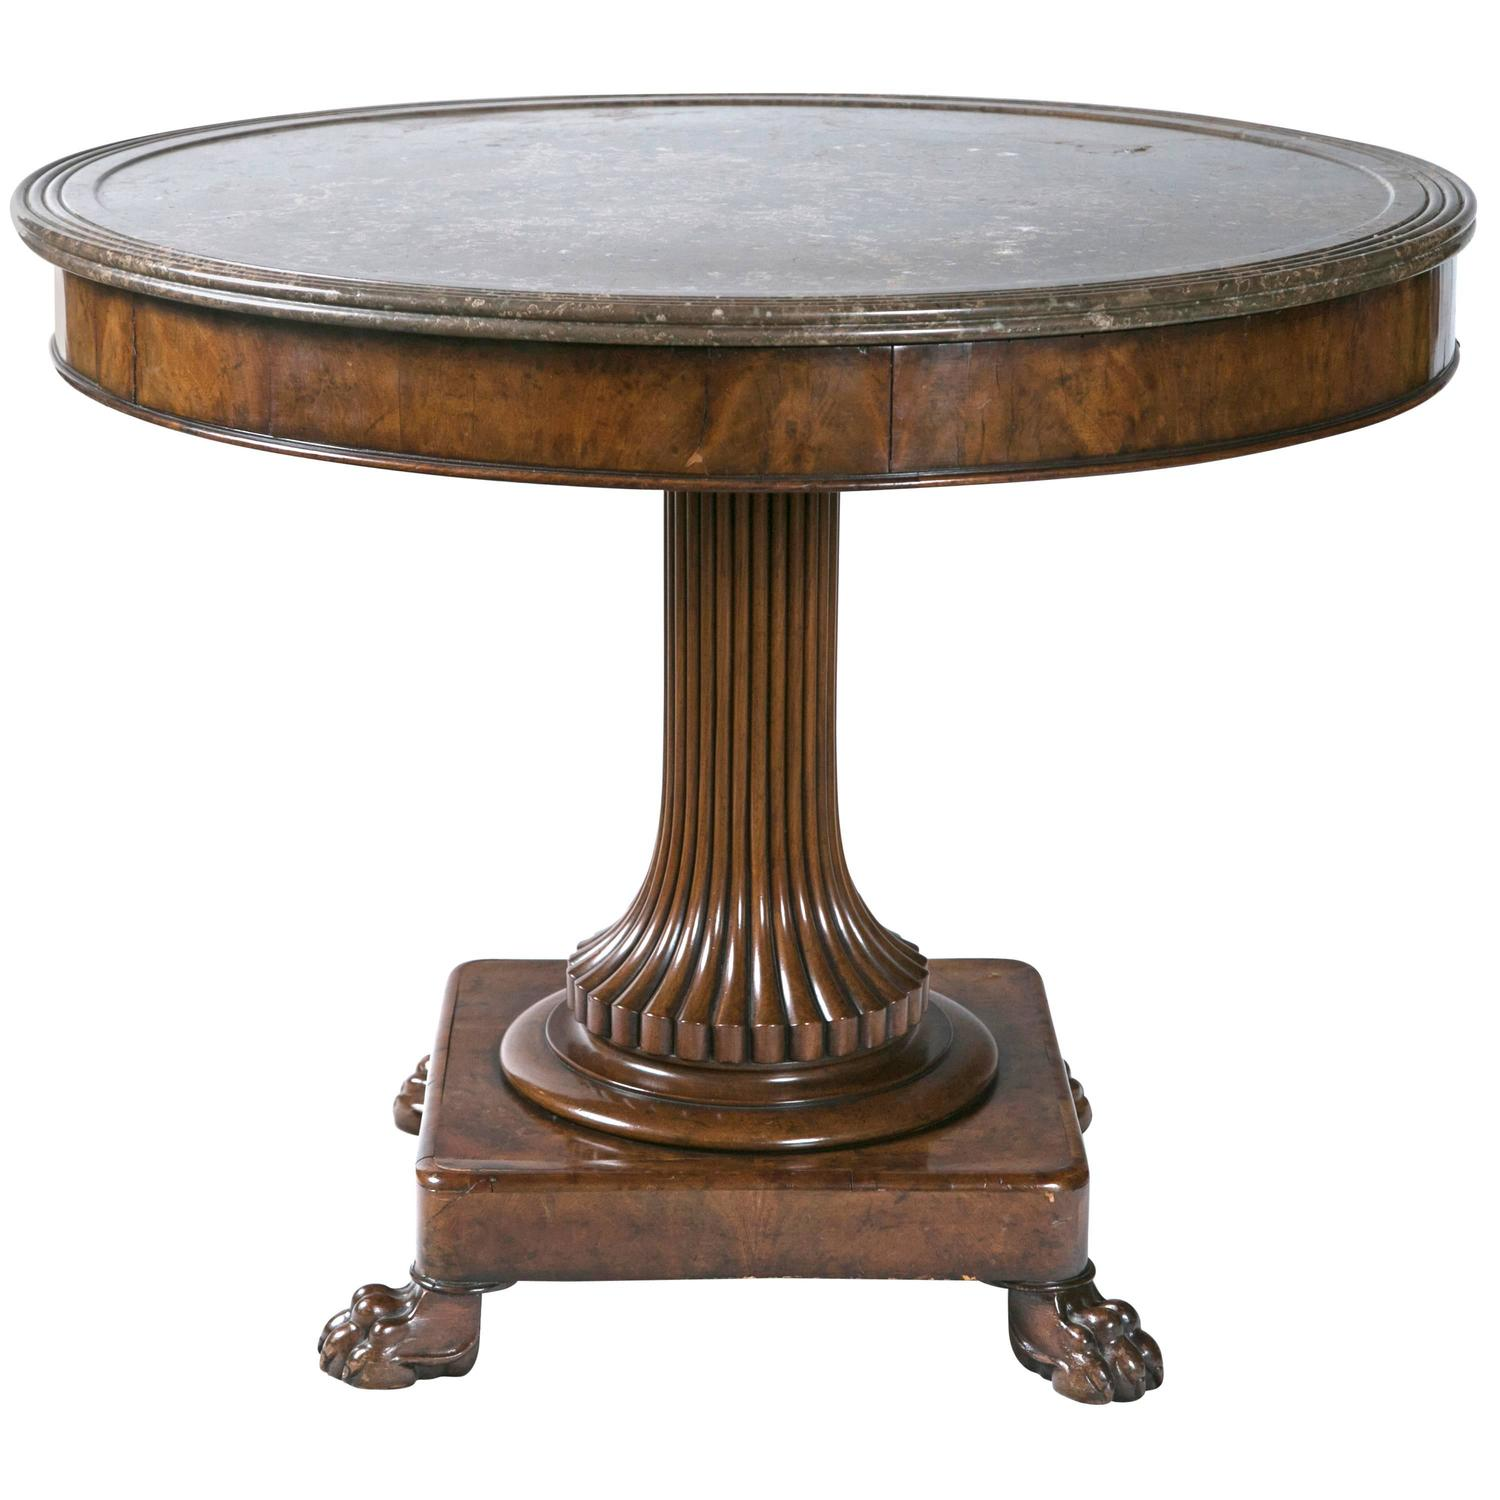 round marble top center table at 1stdibs. Black Bedroom Furniture Sets. Home Design Ideas